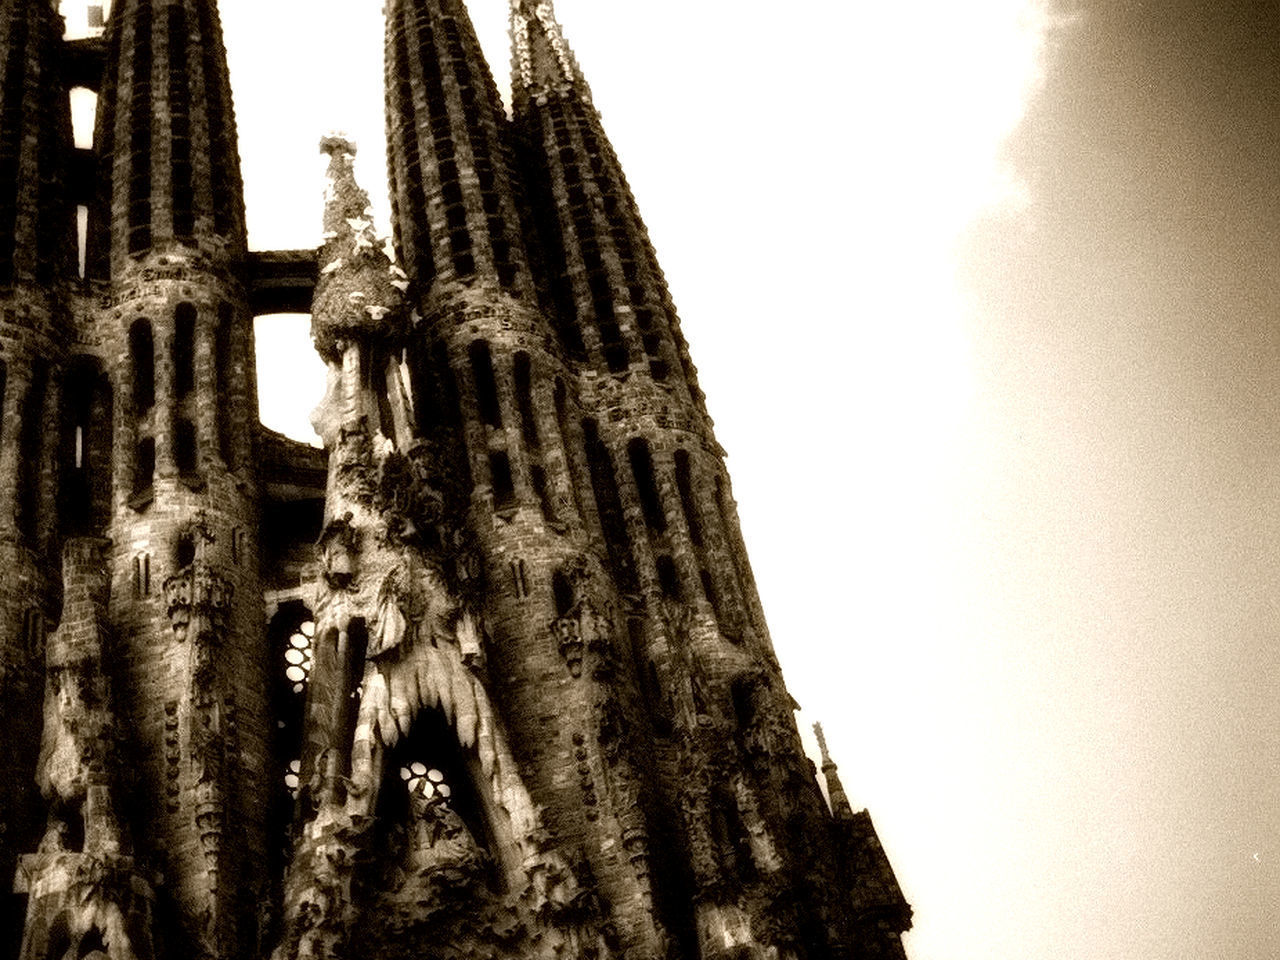 Architecture Barcelona Building Exterior Built Structure Gargoyle Gaudi Gaudi Barcelona Gaudì Architecture Work History Low Angle View Place Of Worship Religion Sagrada Familia Sagradafamilia Sagradafamiliabarcelona Sculpture Spirituality Temple Travel Destinations